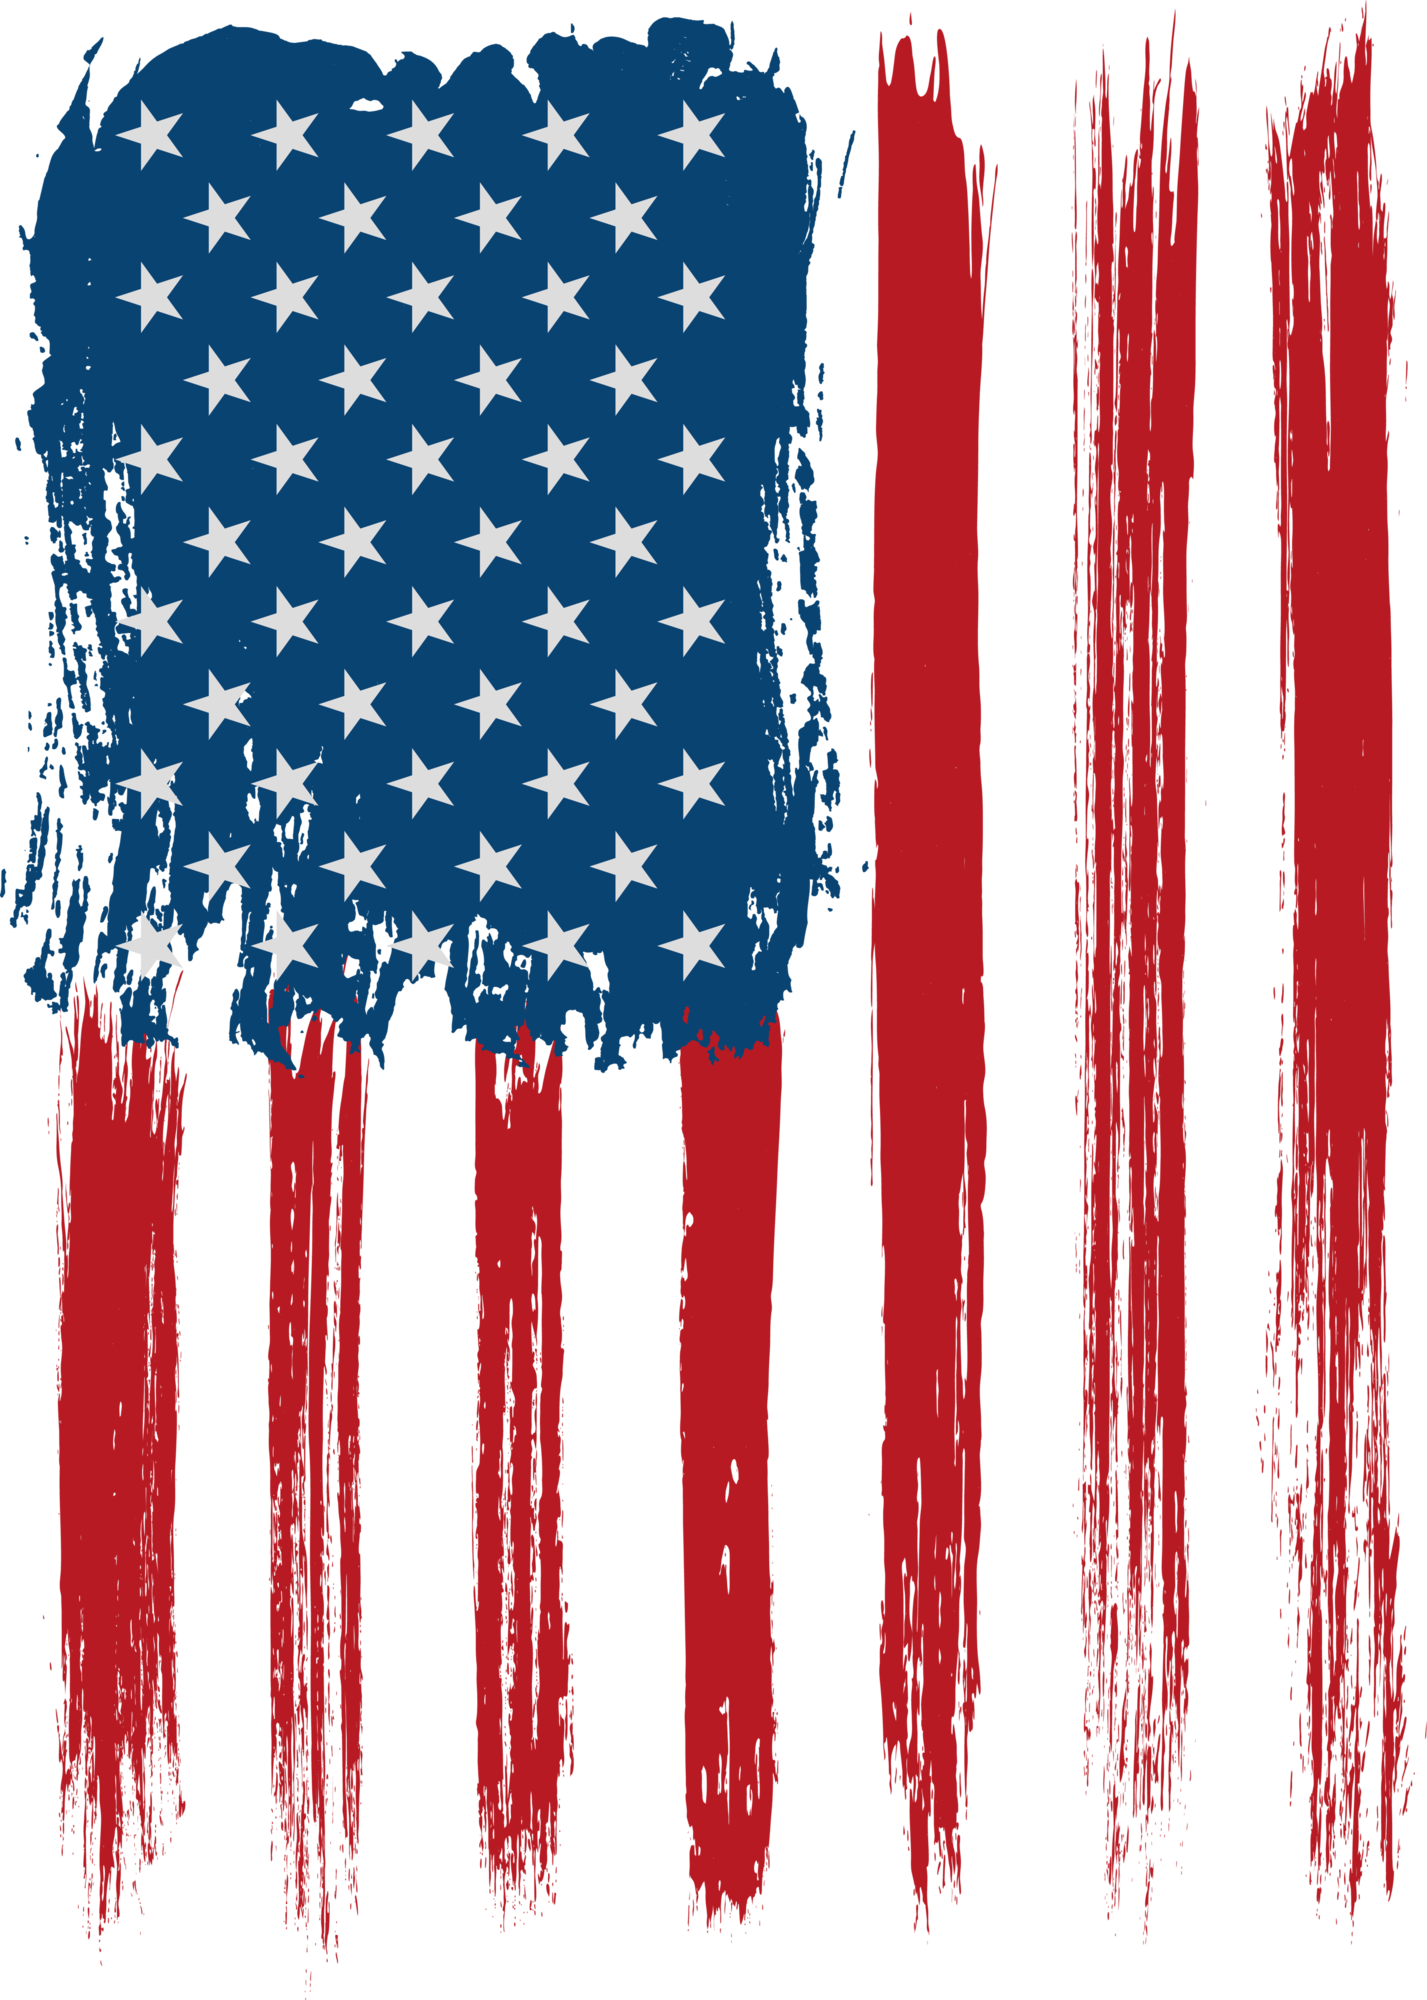 USA Flag Decoration Transparent Clip Art Image